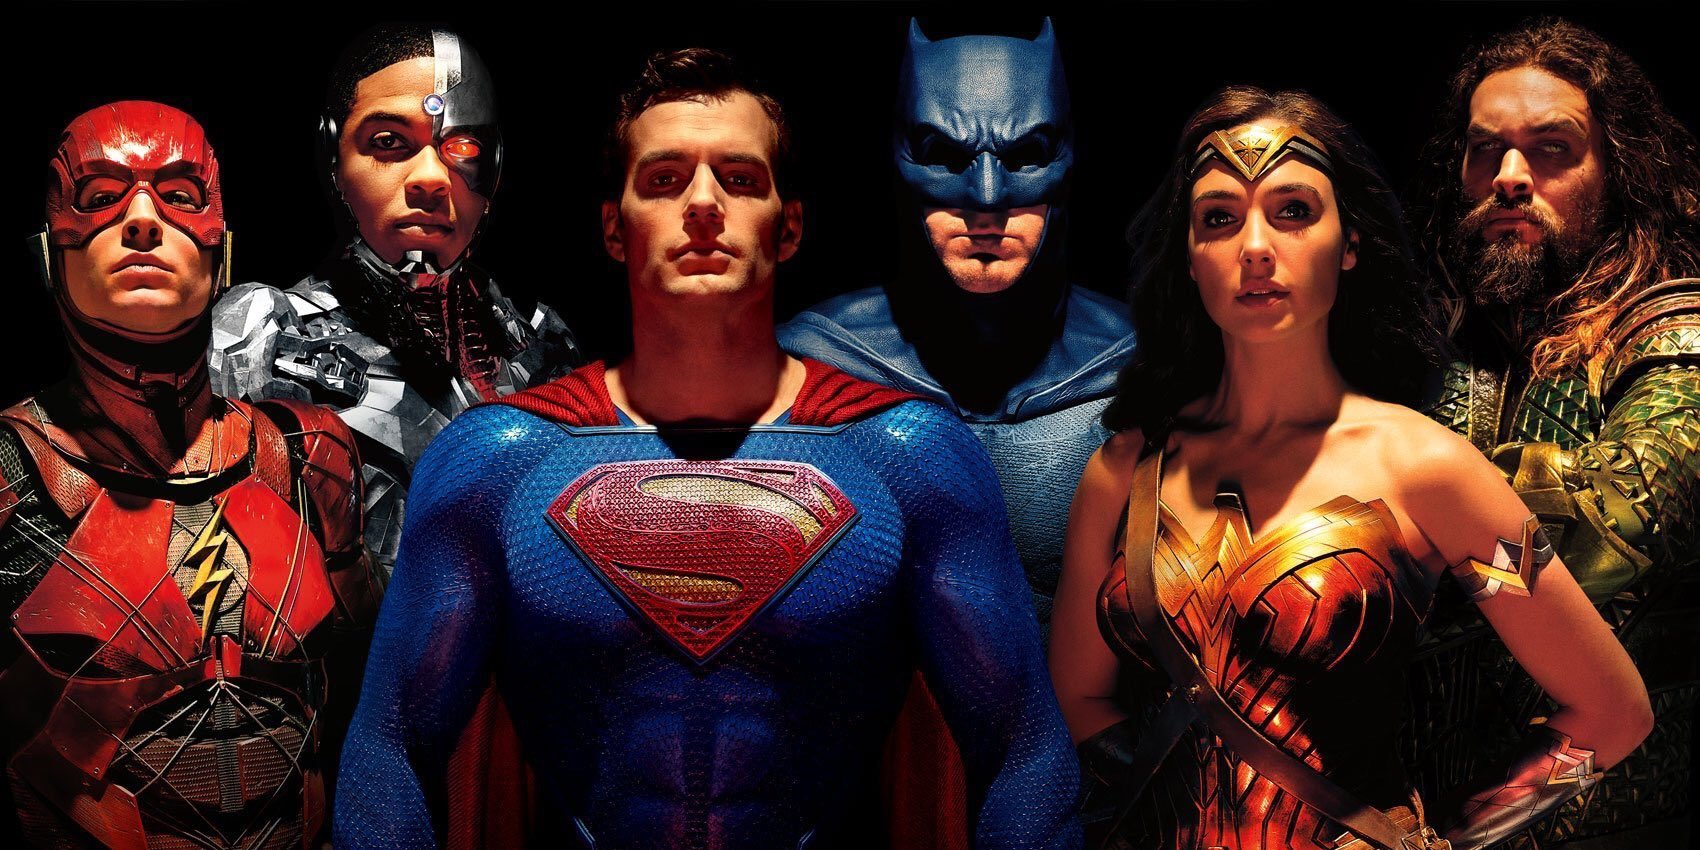 Dc 2019 Movies Poster: What Went Wrong With Justice League Comedic Pitch Meeting